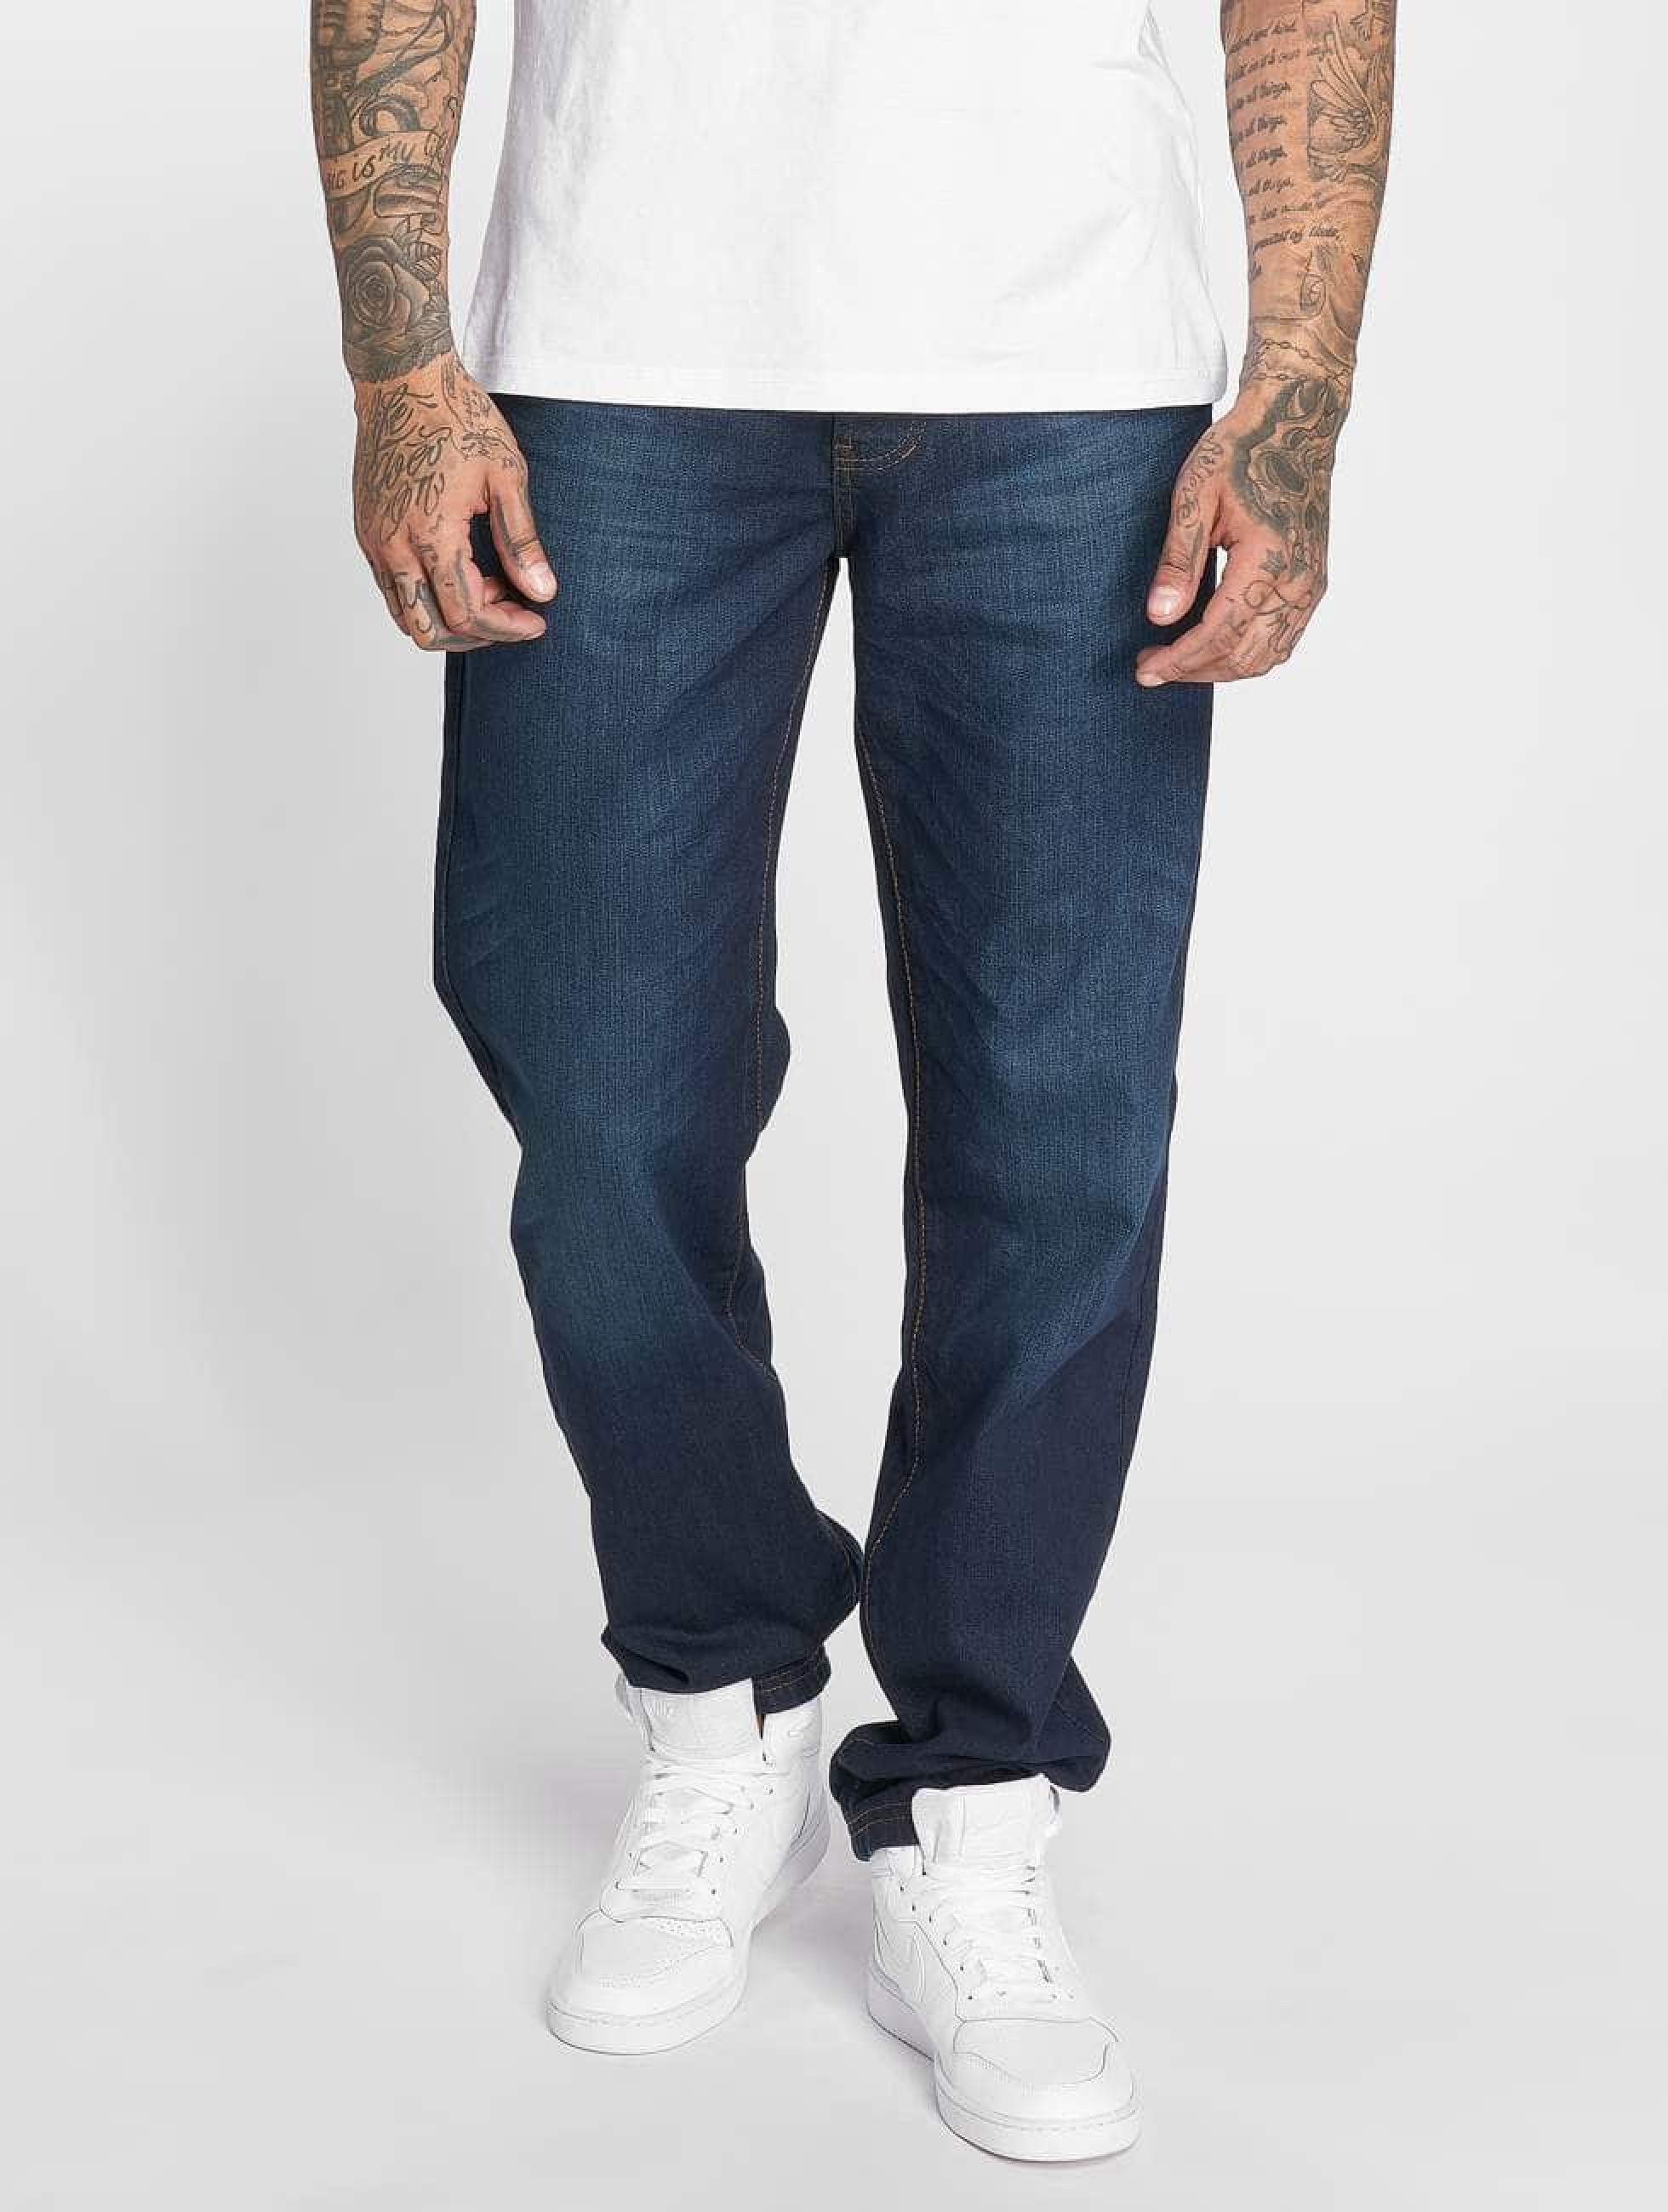 Thug Life / Carrot Fit Jeans B . Denim in blue W 32 L 34